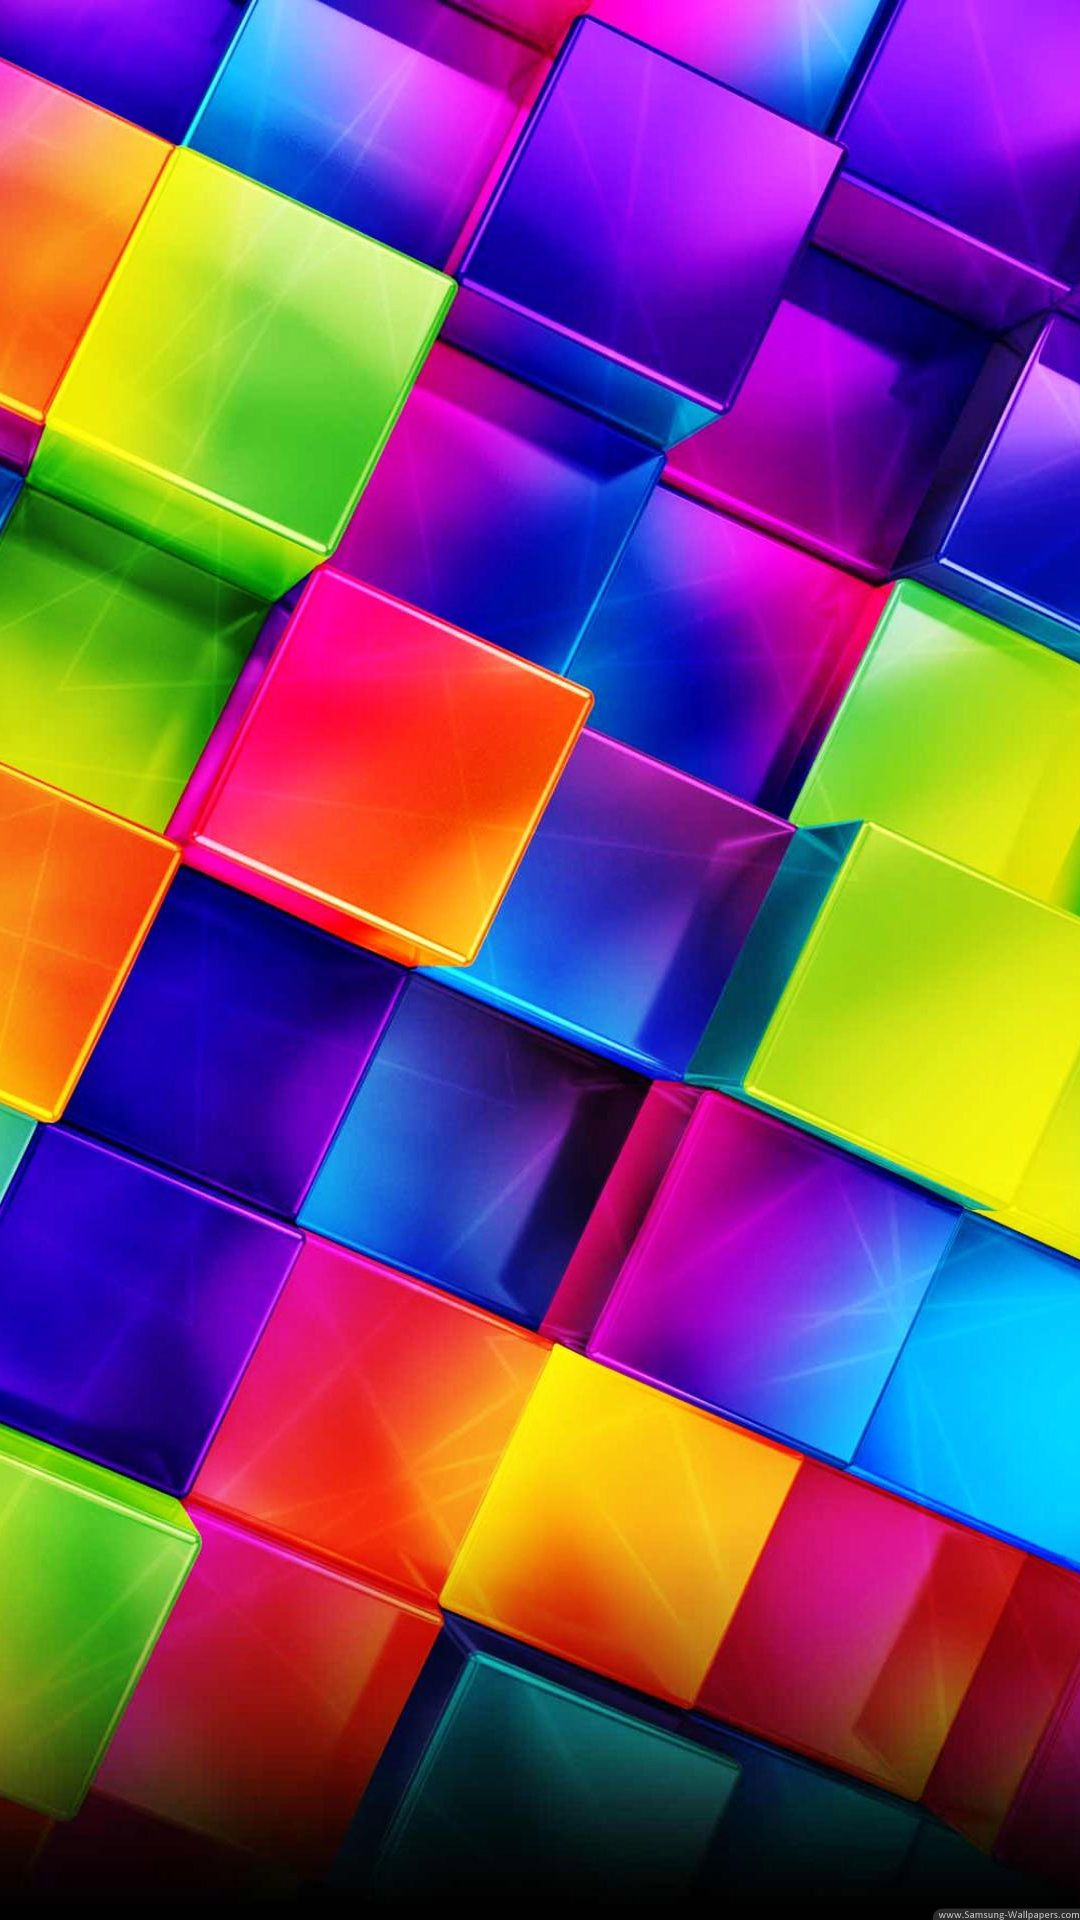 Colorful Image By R Louie Geometric Wallpaper Iphone S5